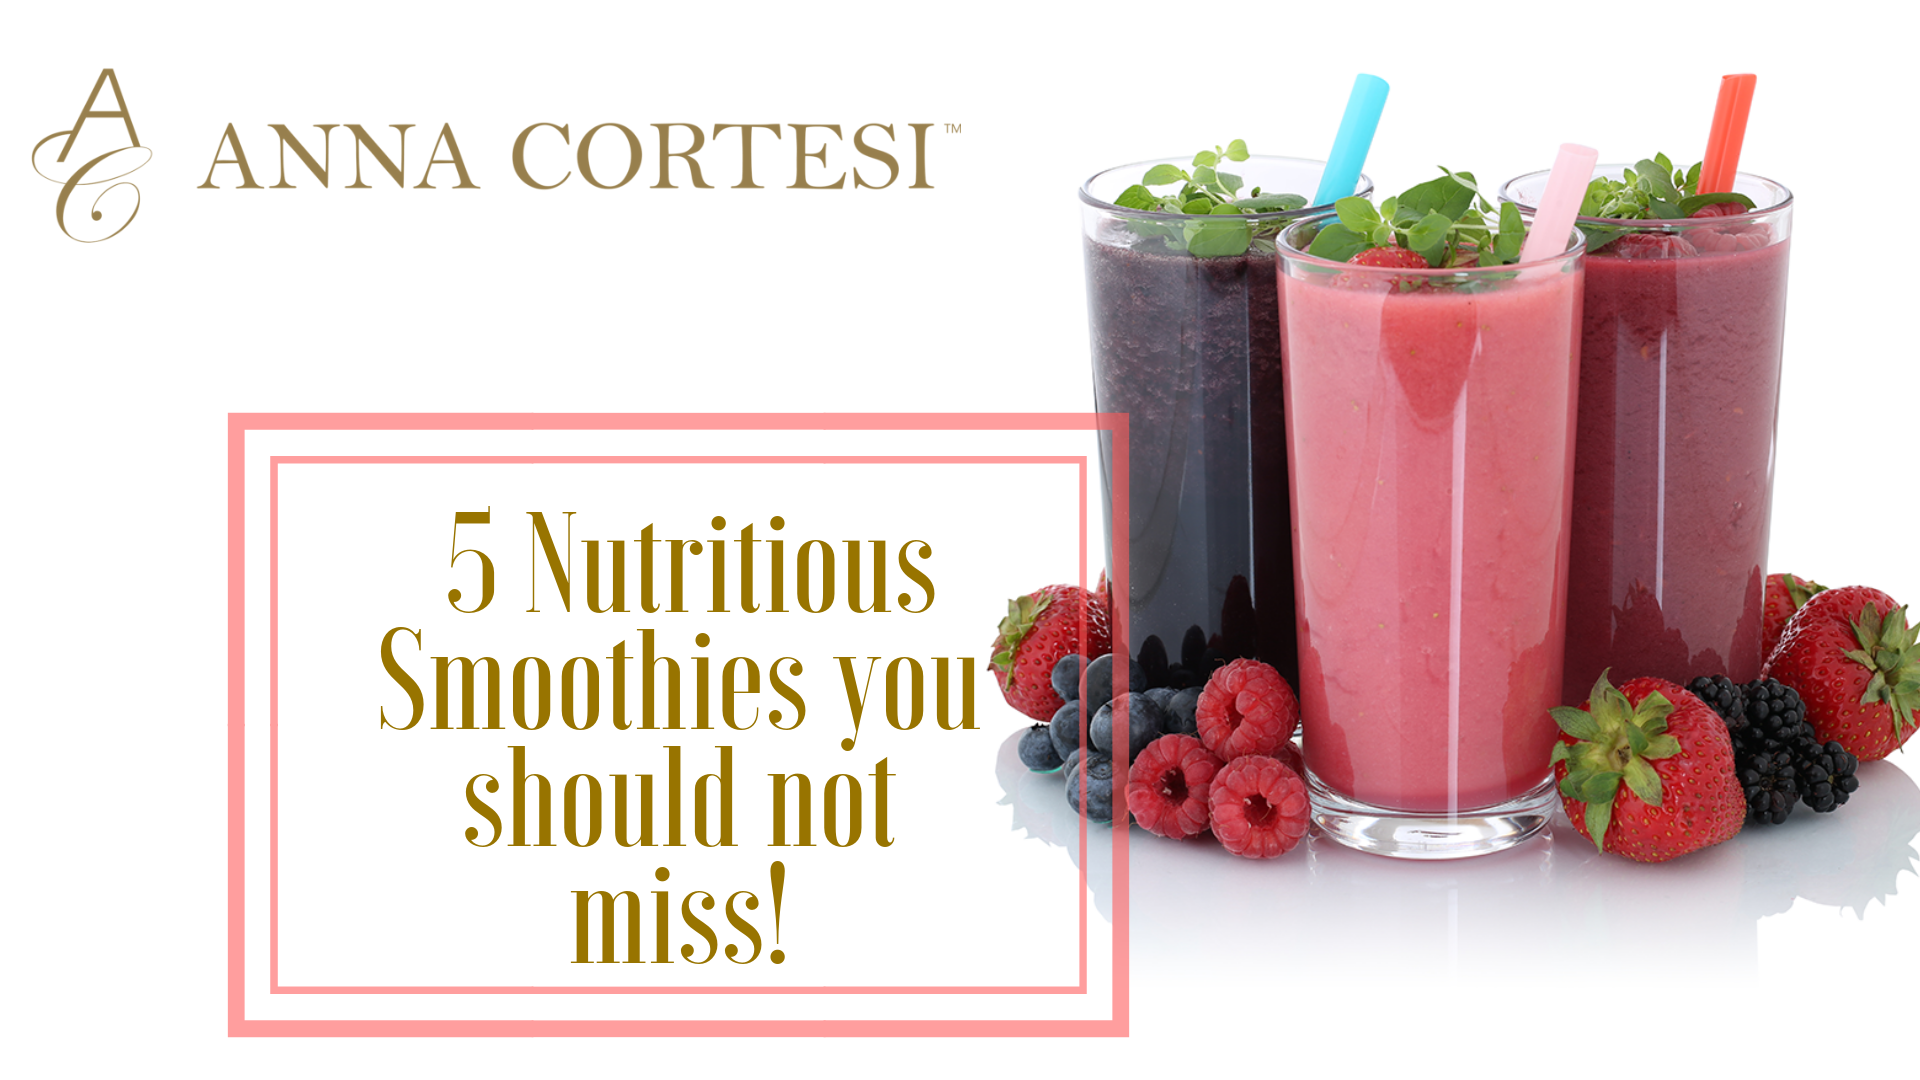 5 Nutritious Smoothies you shoud not miss